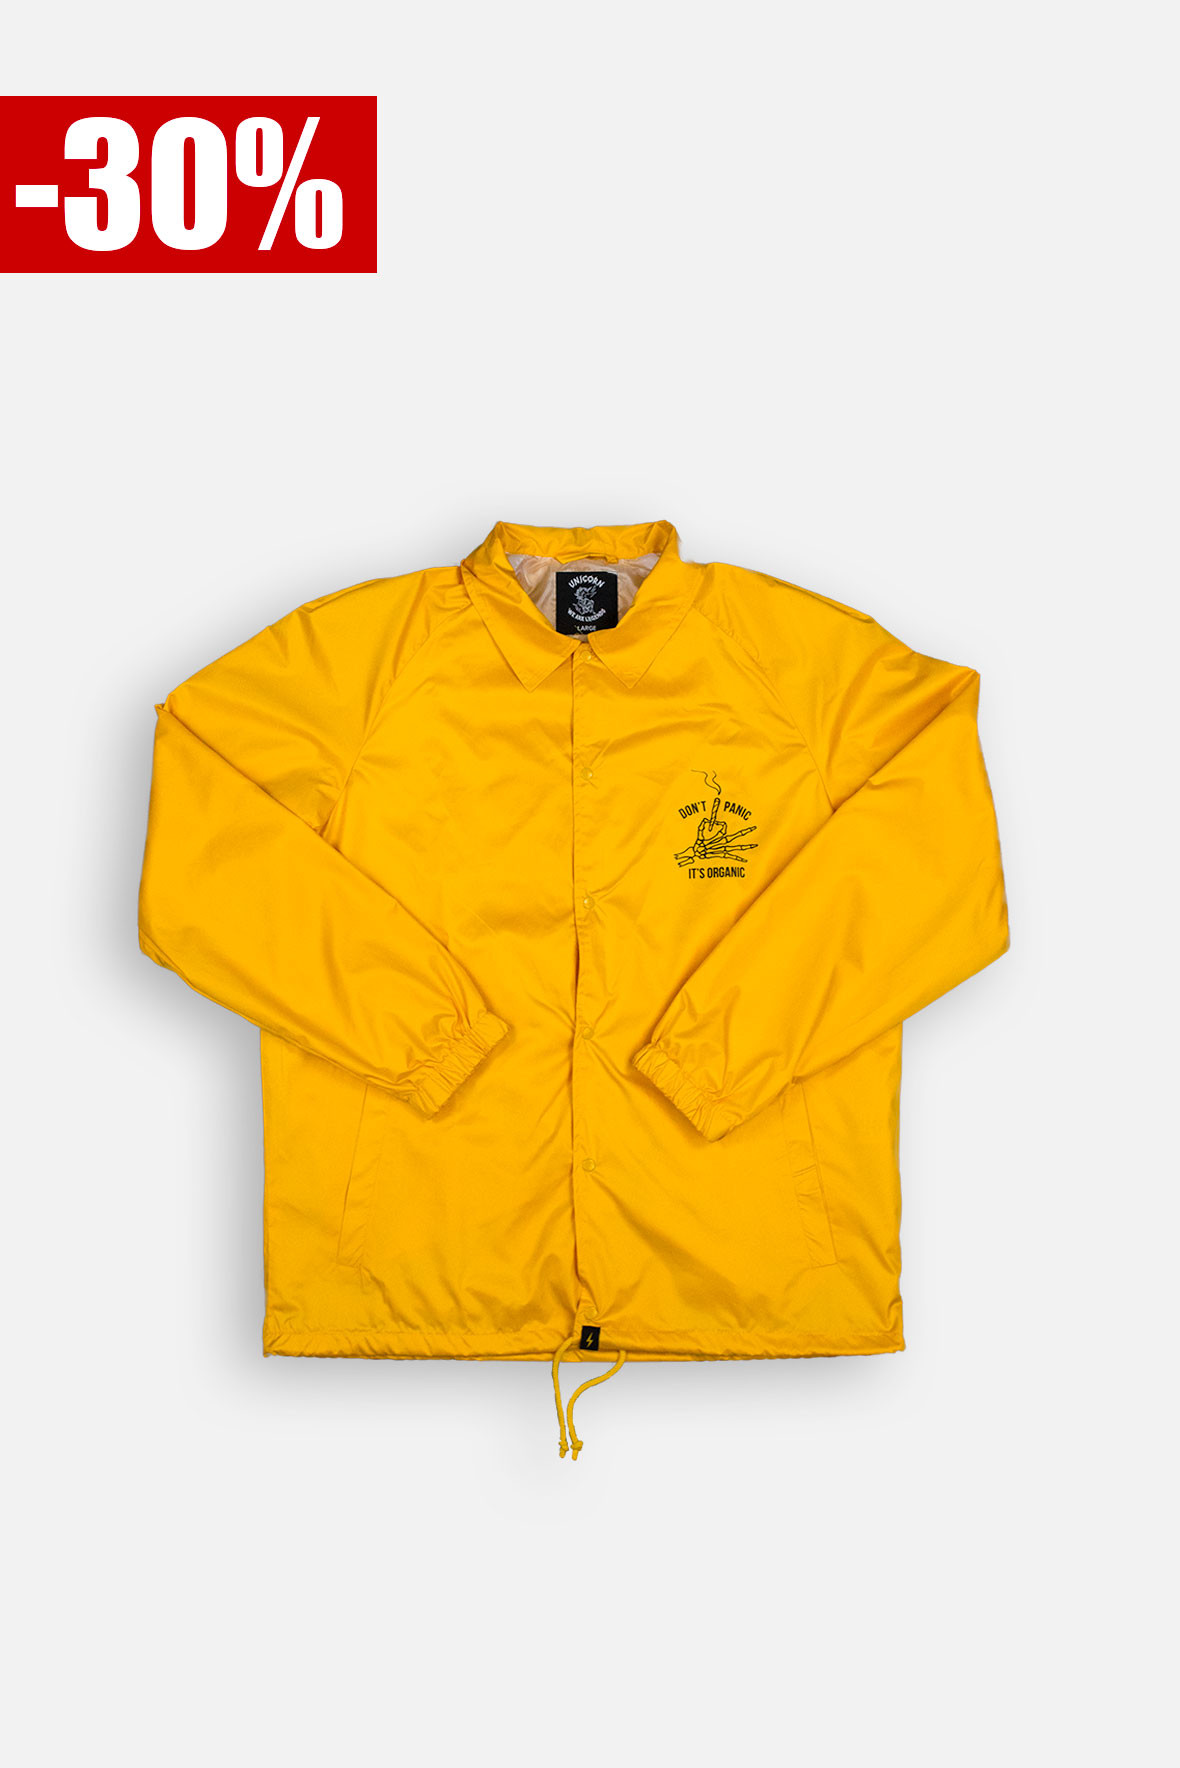 Coach Jacket Don't Panic Jaune